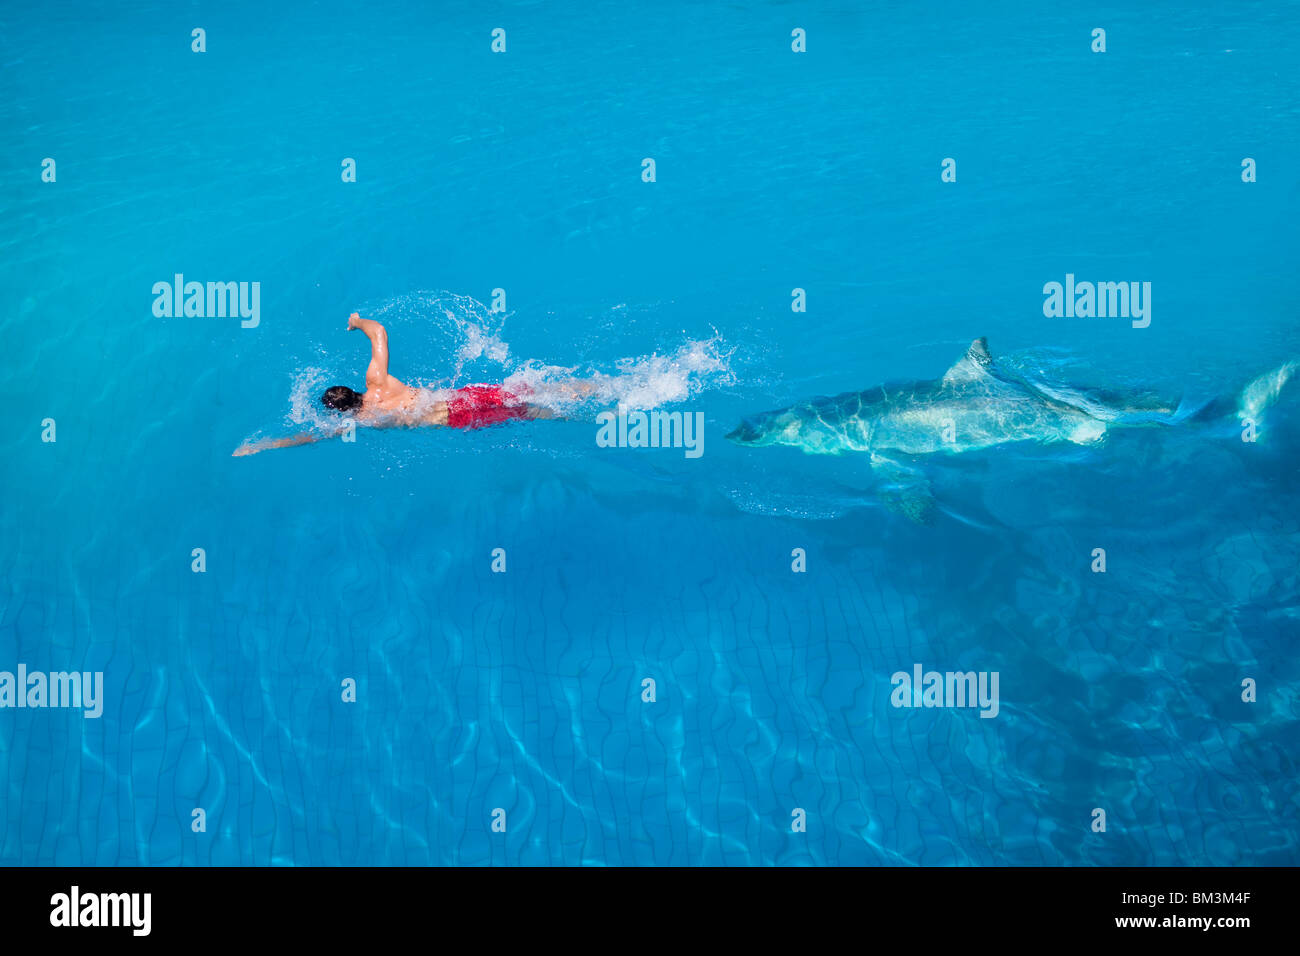 Being haunted by a shark - Stock Image